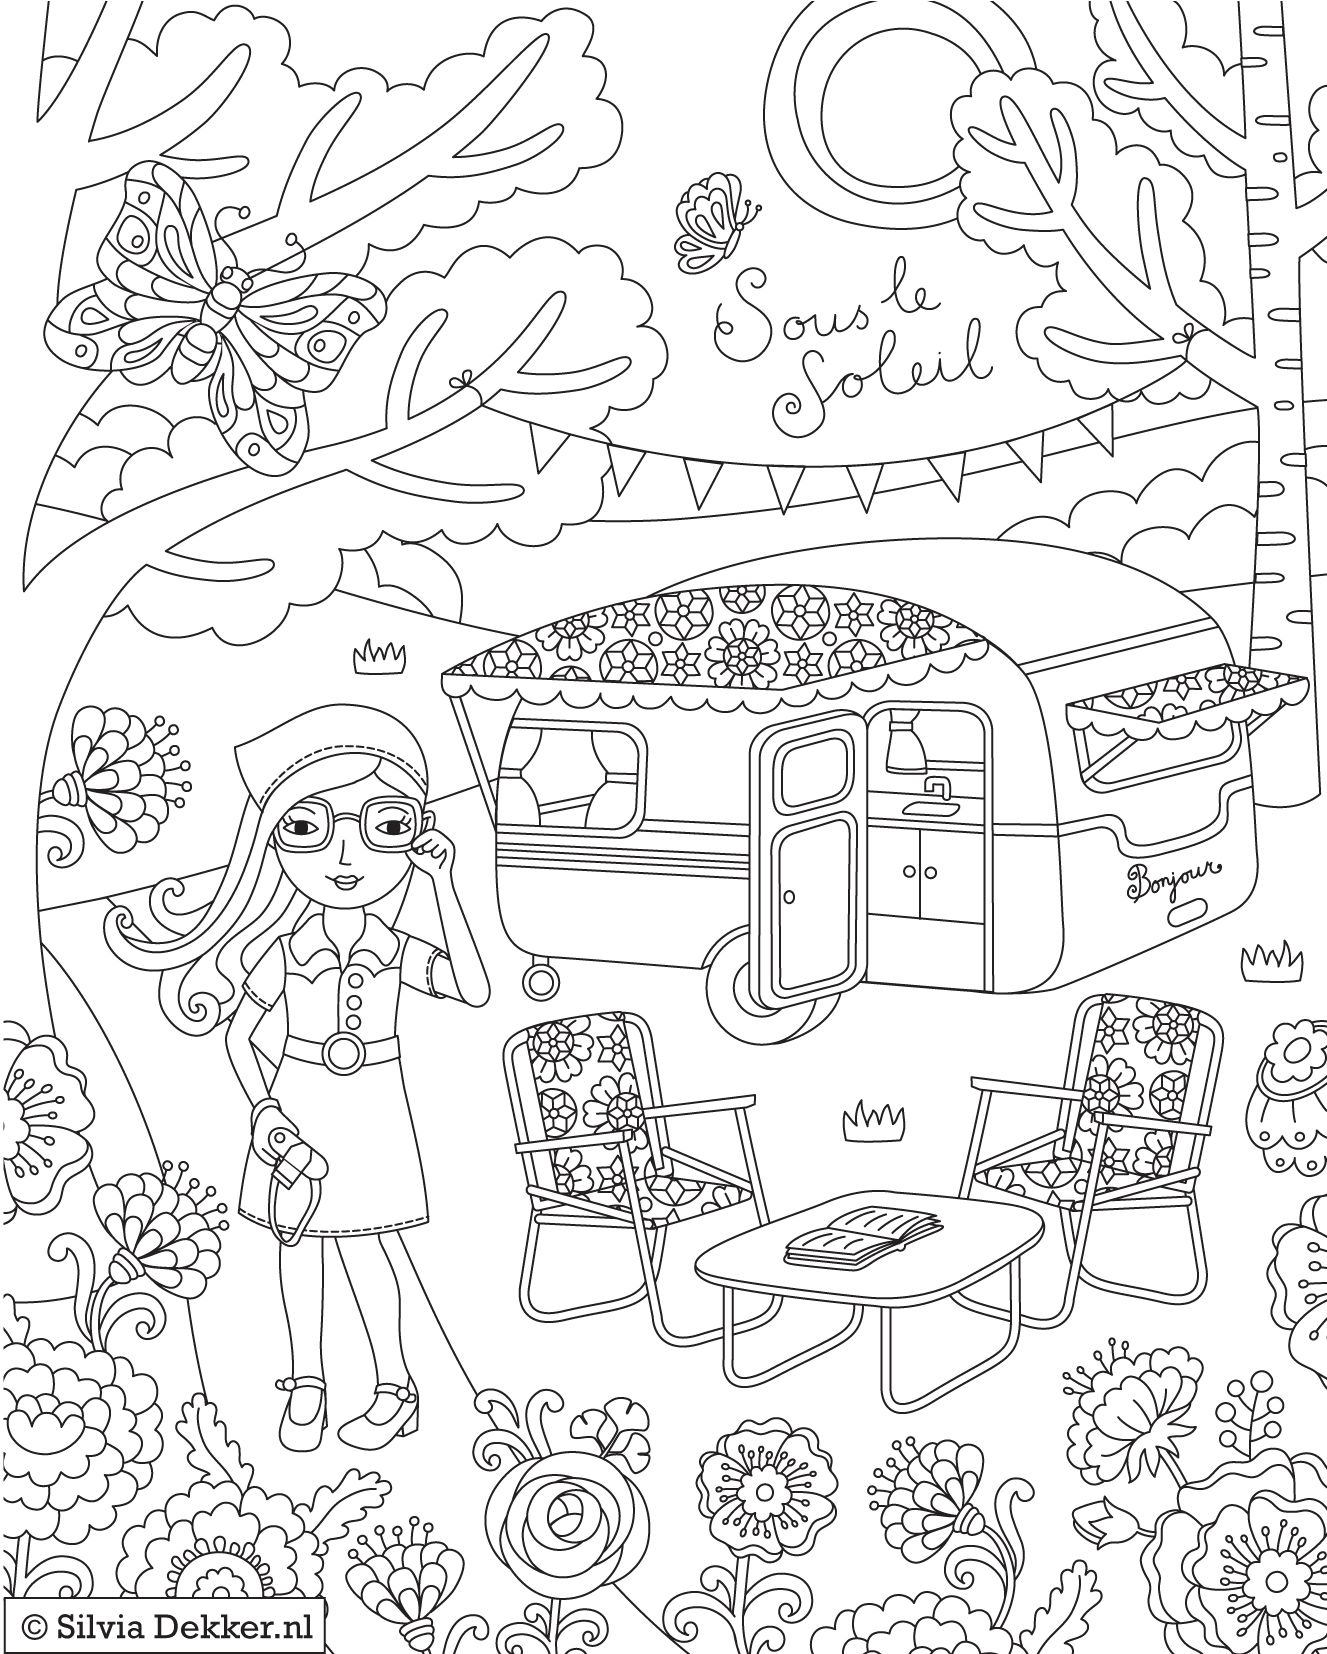 camping coloring page for flow magazine by silvia dekker - Camping Coloring Pages